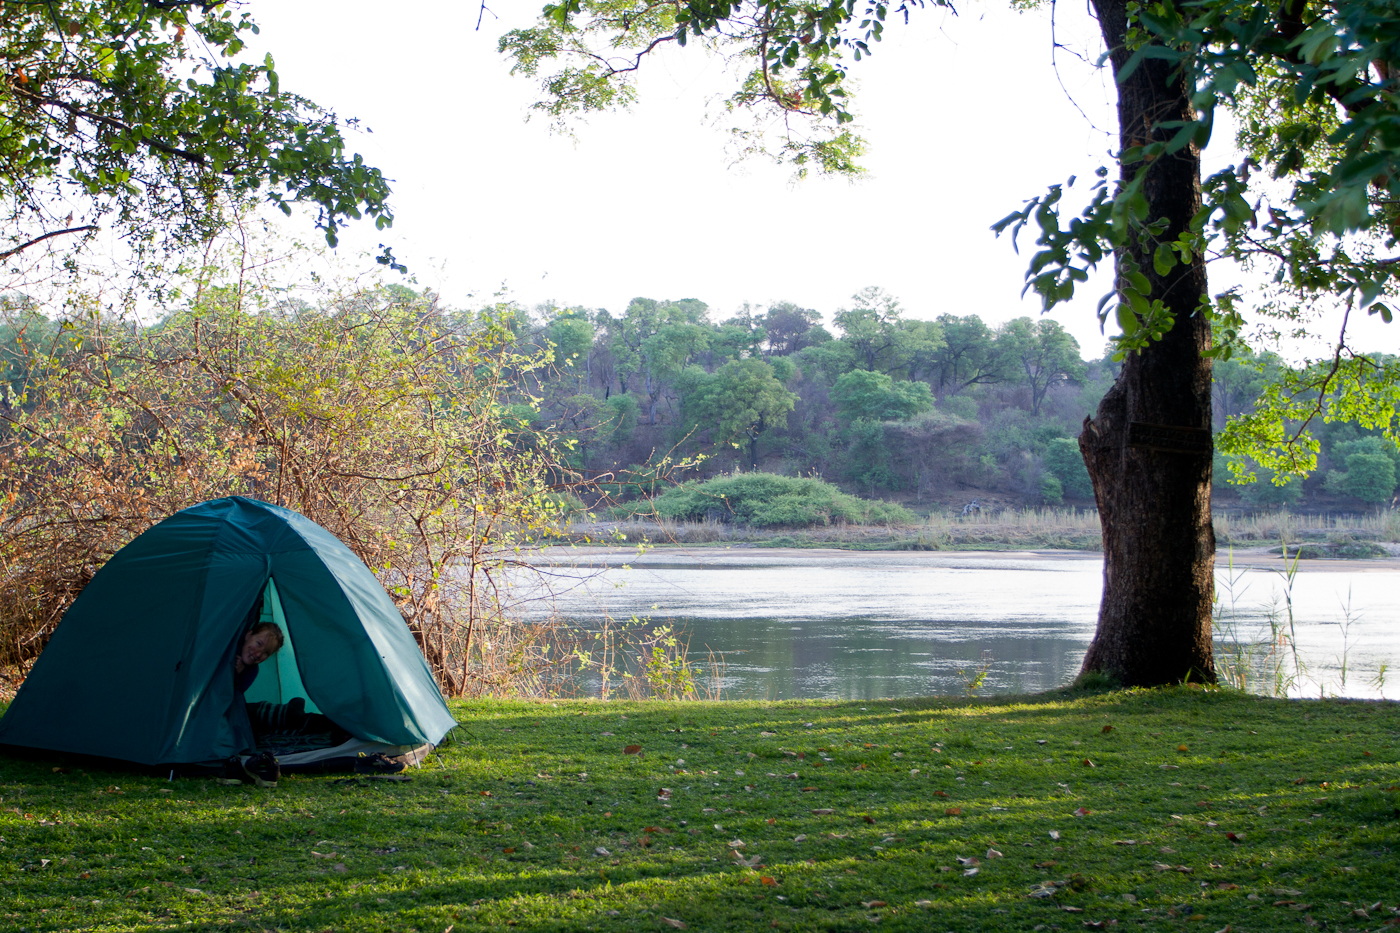 Our modest tent on the banks of the Okavango at 8AM